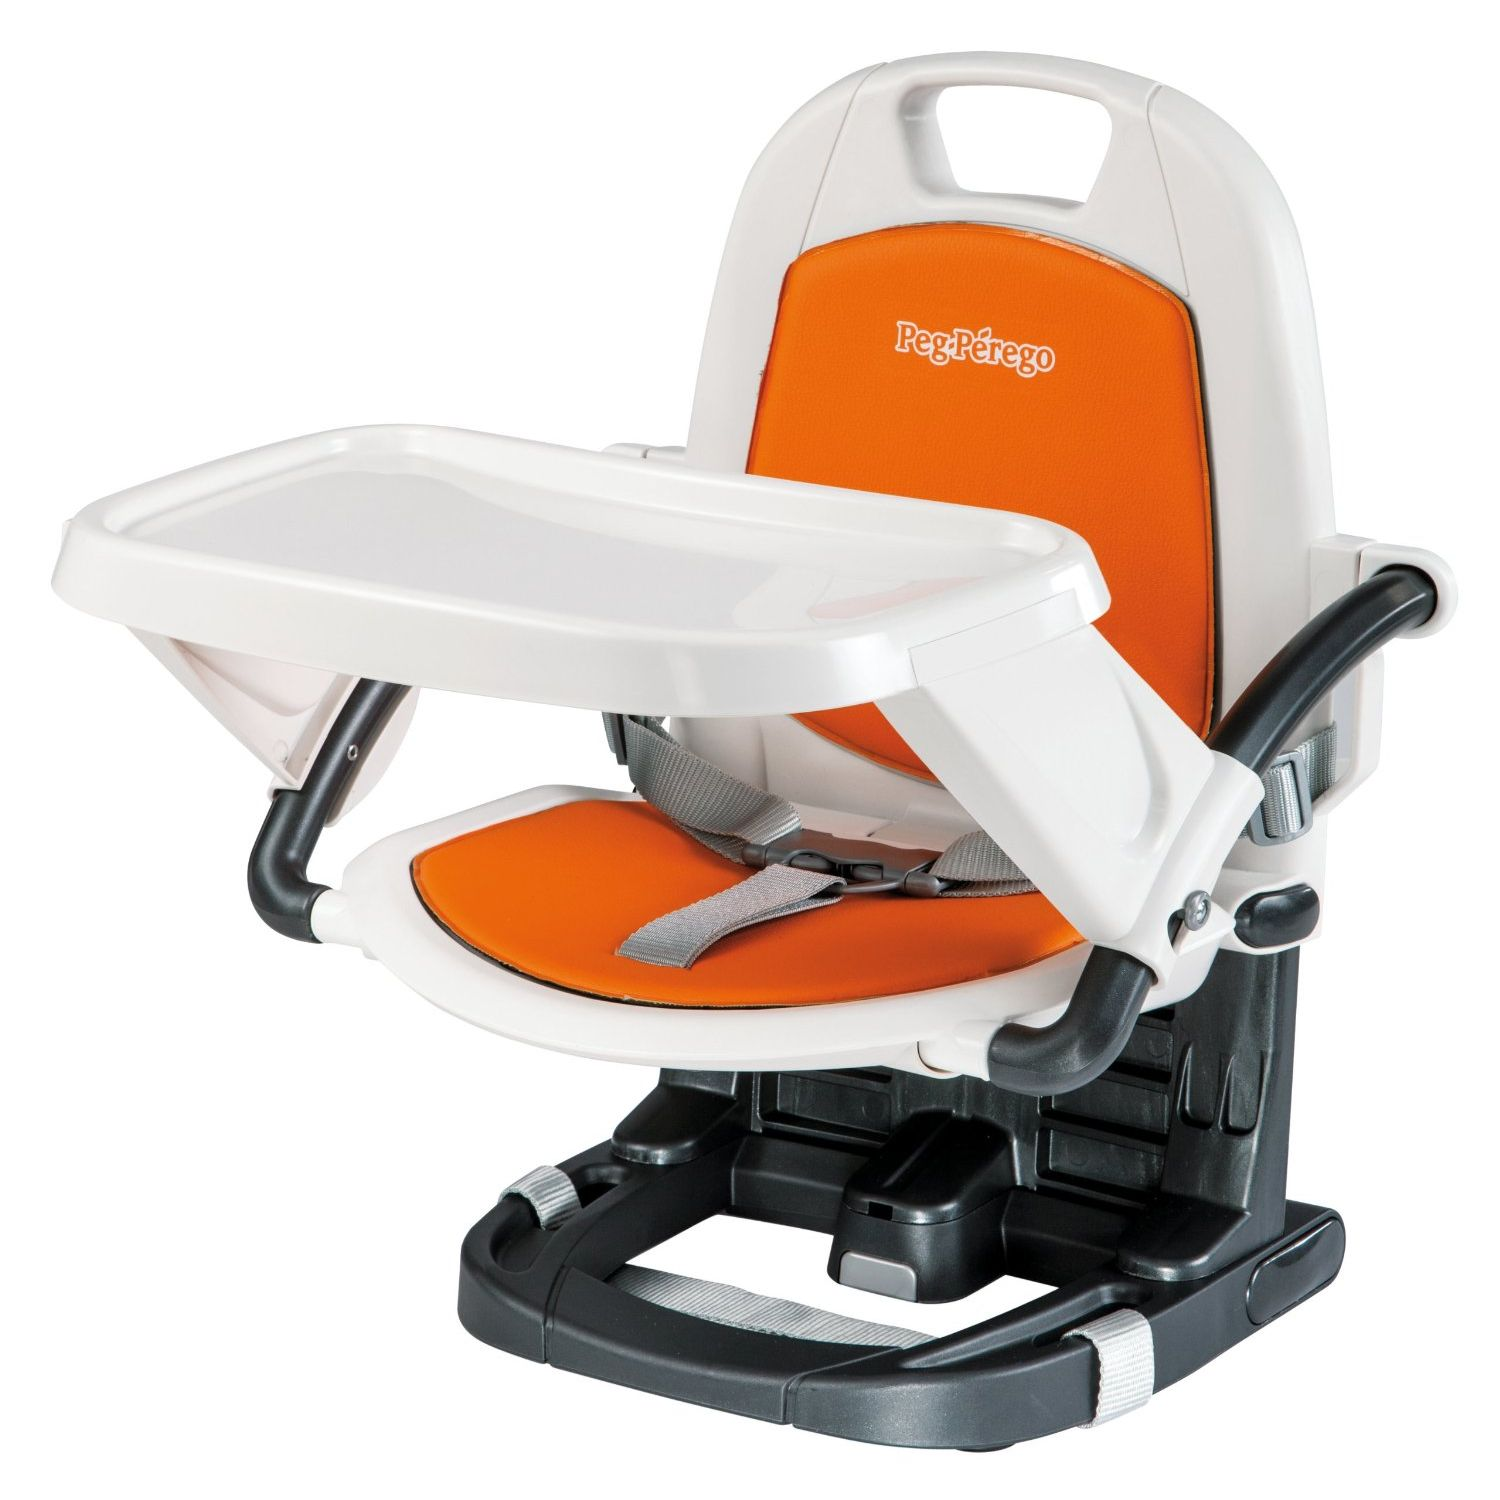 Peg Perego Rialto Booster Chair - Aranica (Orange)